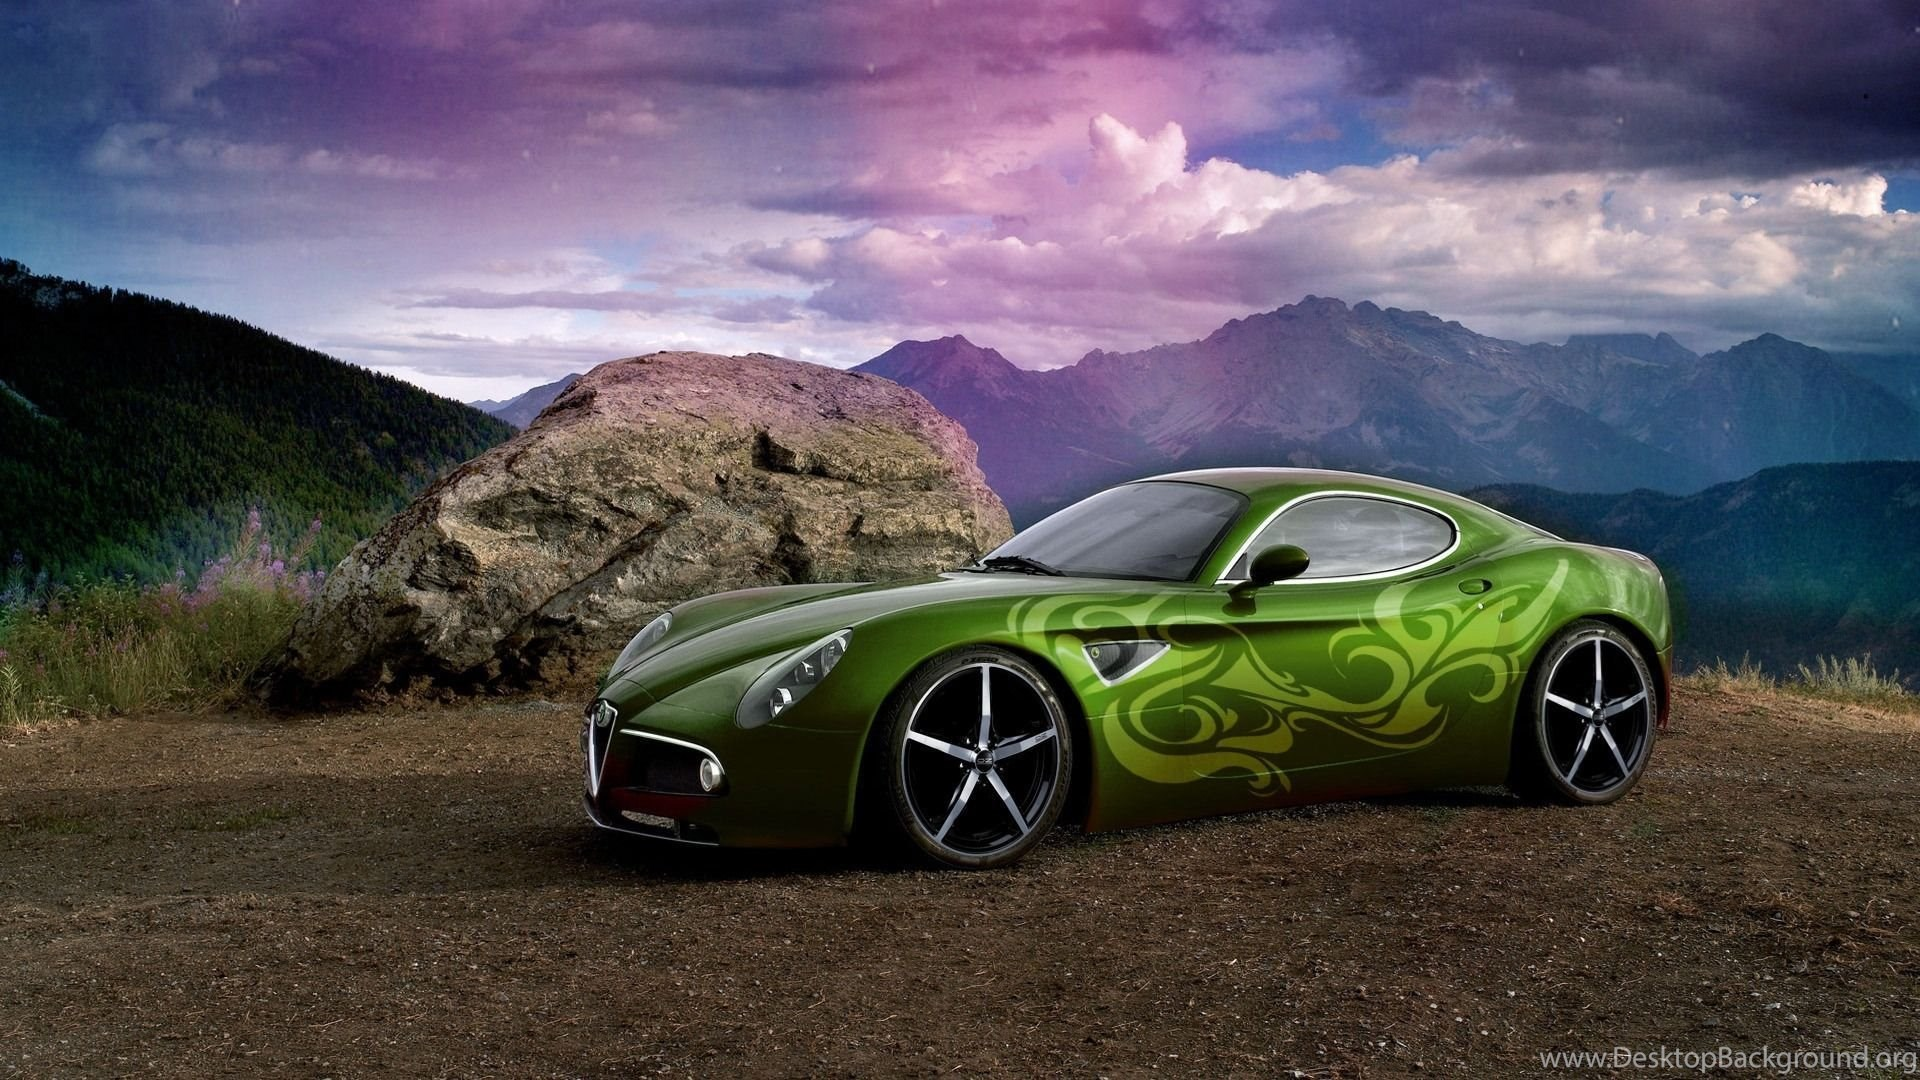 download wallpapers religious, 3d, abstract, nature, sport, cars